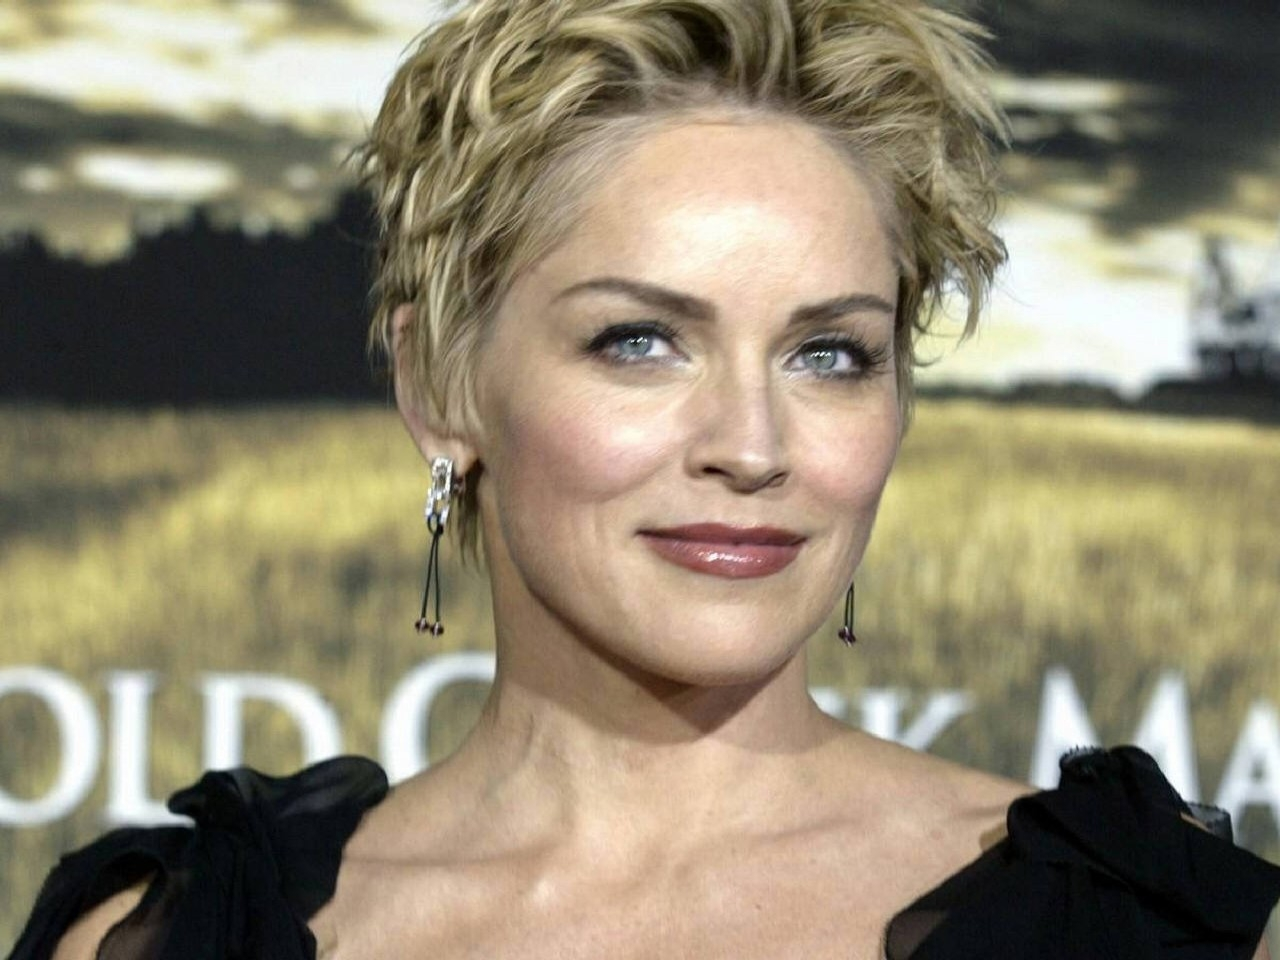 Wallpaper di Sharon Stone, una delle ultime dive del cinema americano